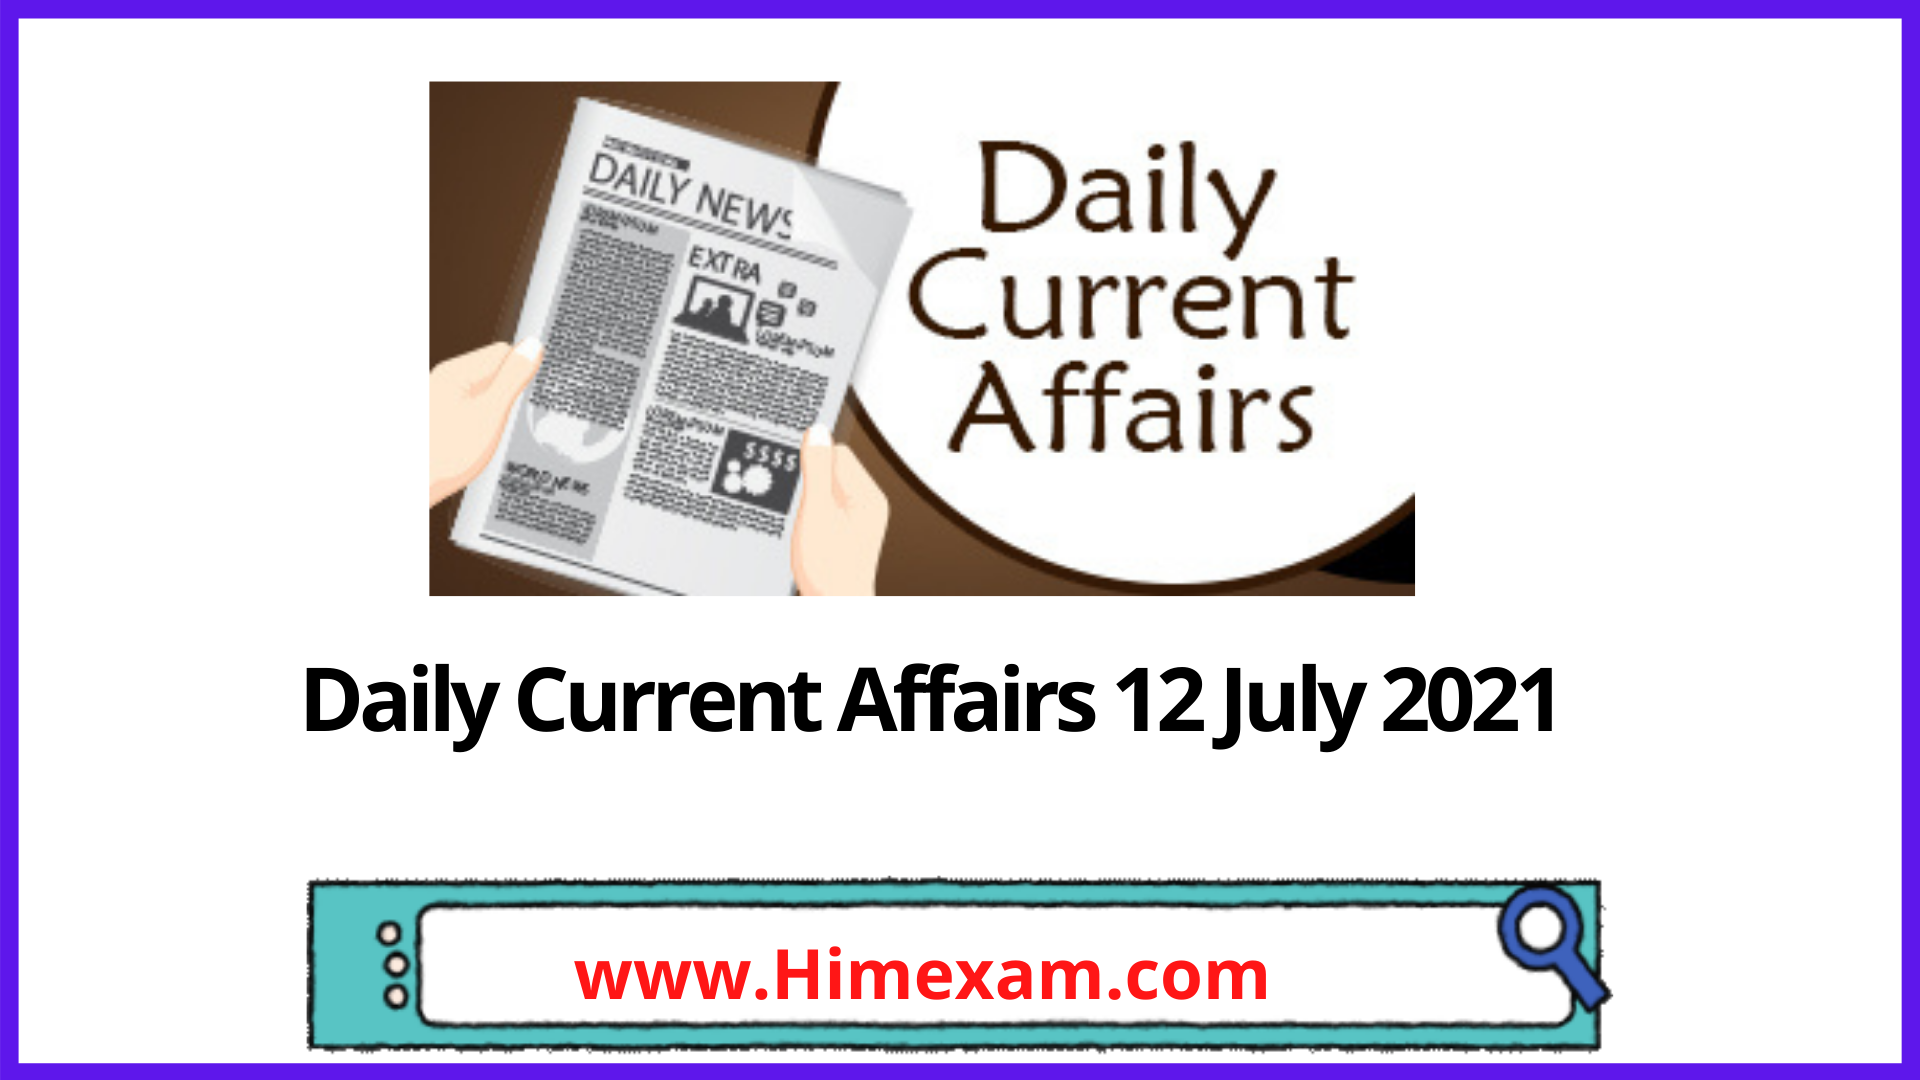 Daily Current Affairs 12 July 2021 In English